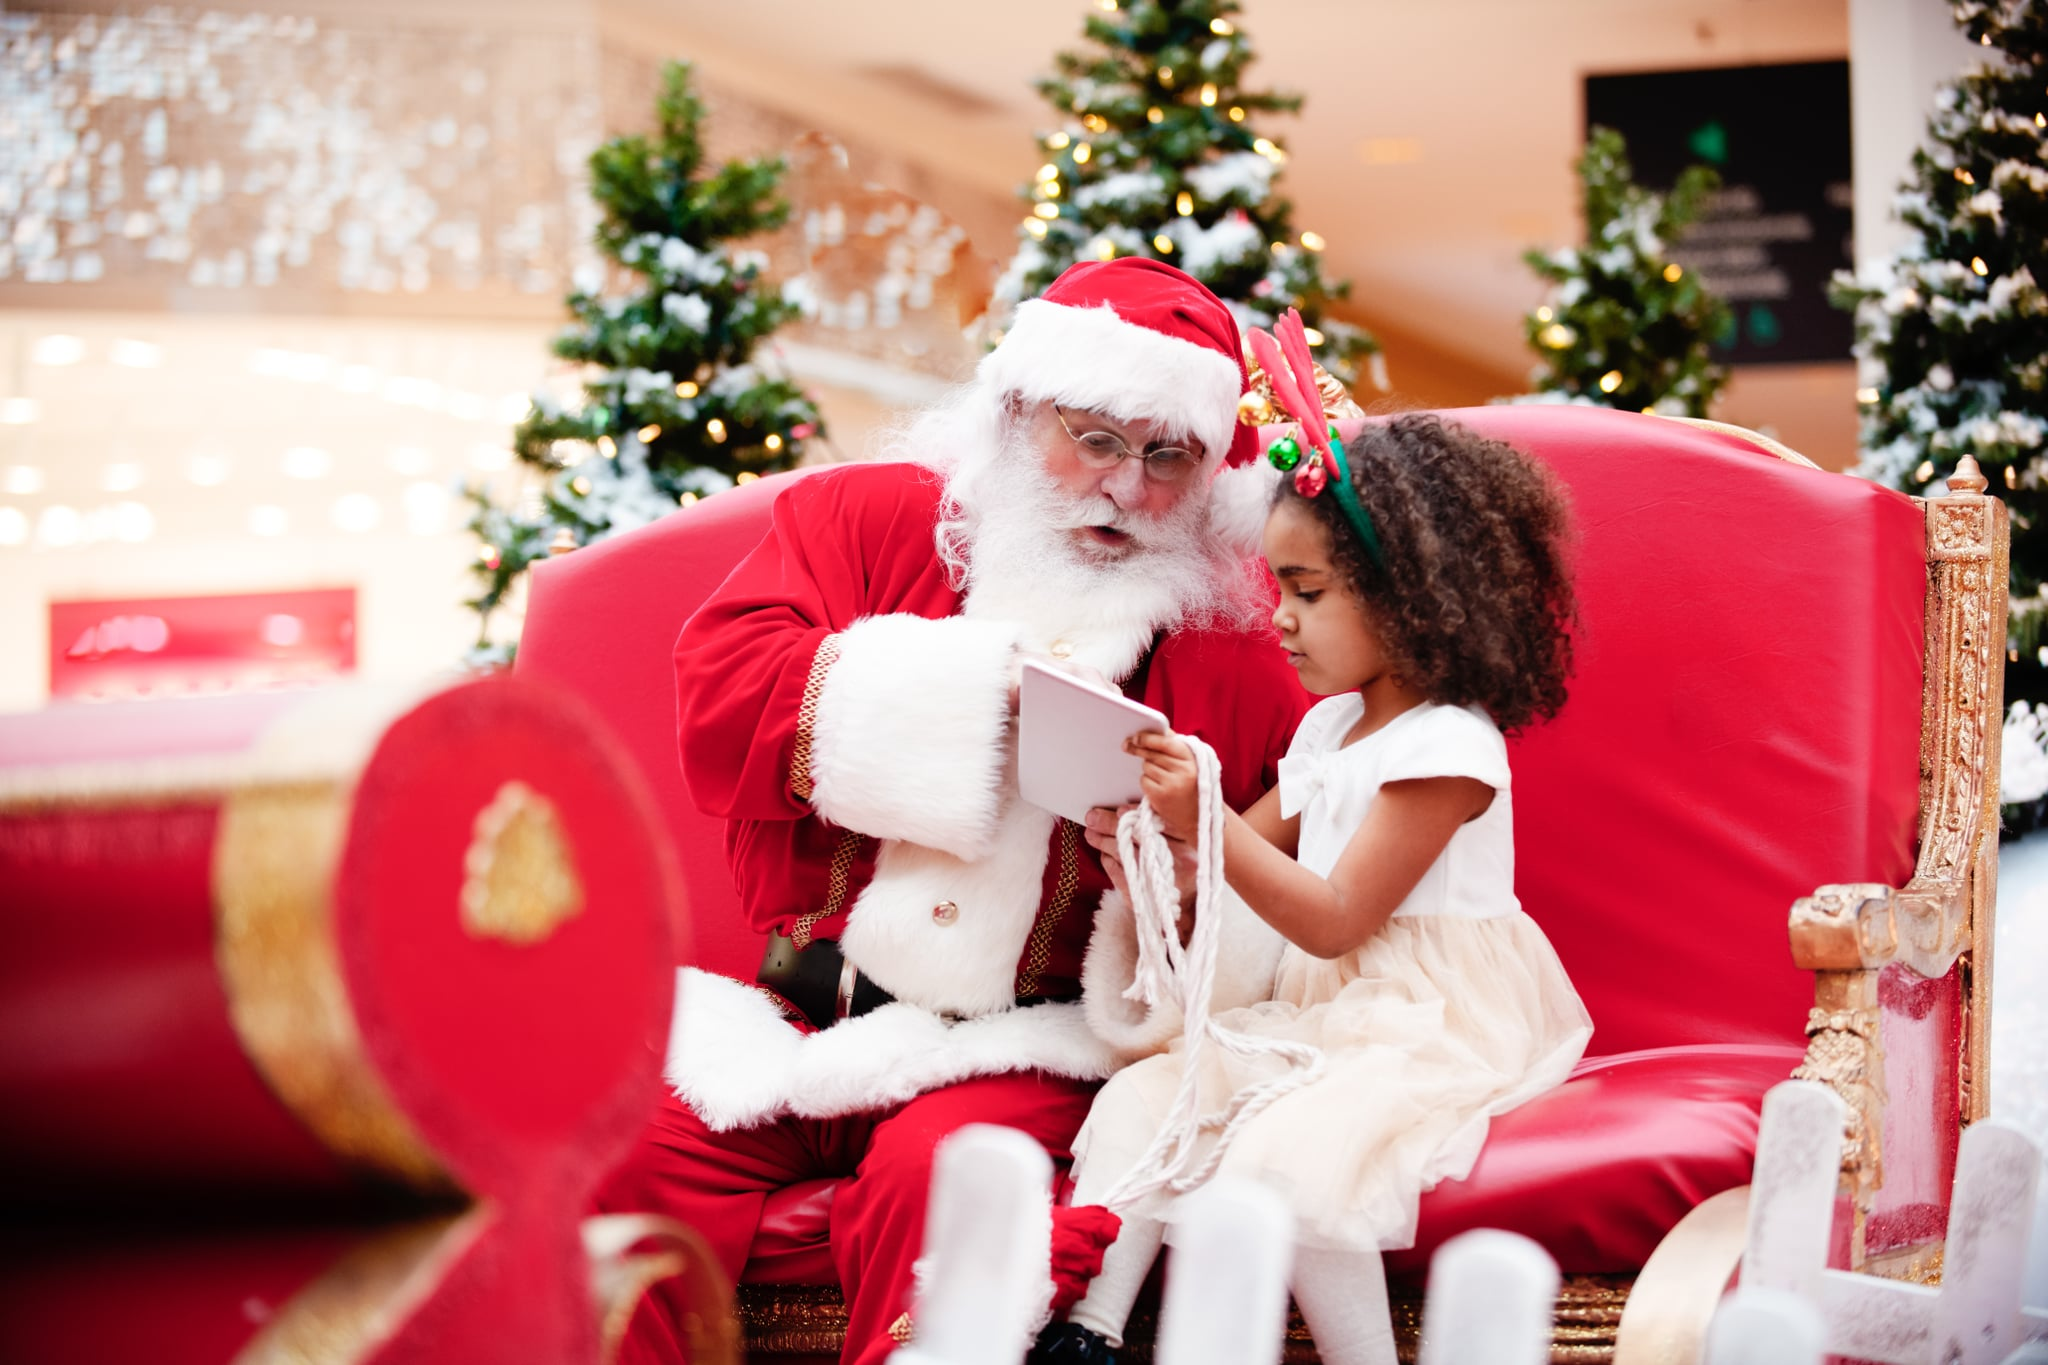 Multi-Ethnic family shops at Shopping Mall during Christmas Time with Santa Claus. Santa Claus and girl are shopping with digital tablet. Santa and girl is looking at the digital tablet. Santa Claus has a beautiful expression on his face. Photo was taken in Quebec Canada.